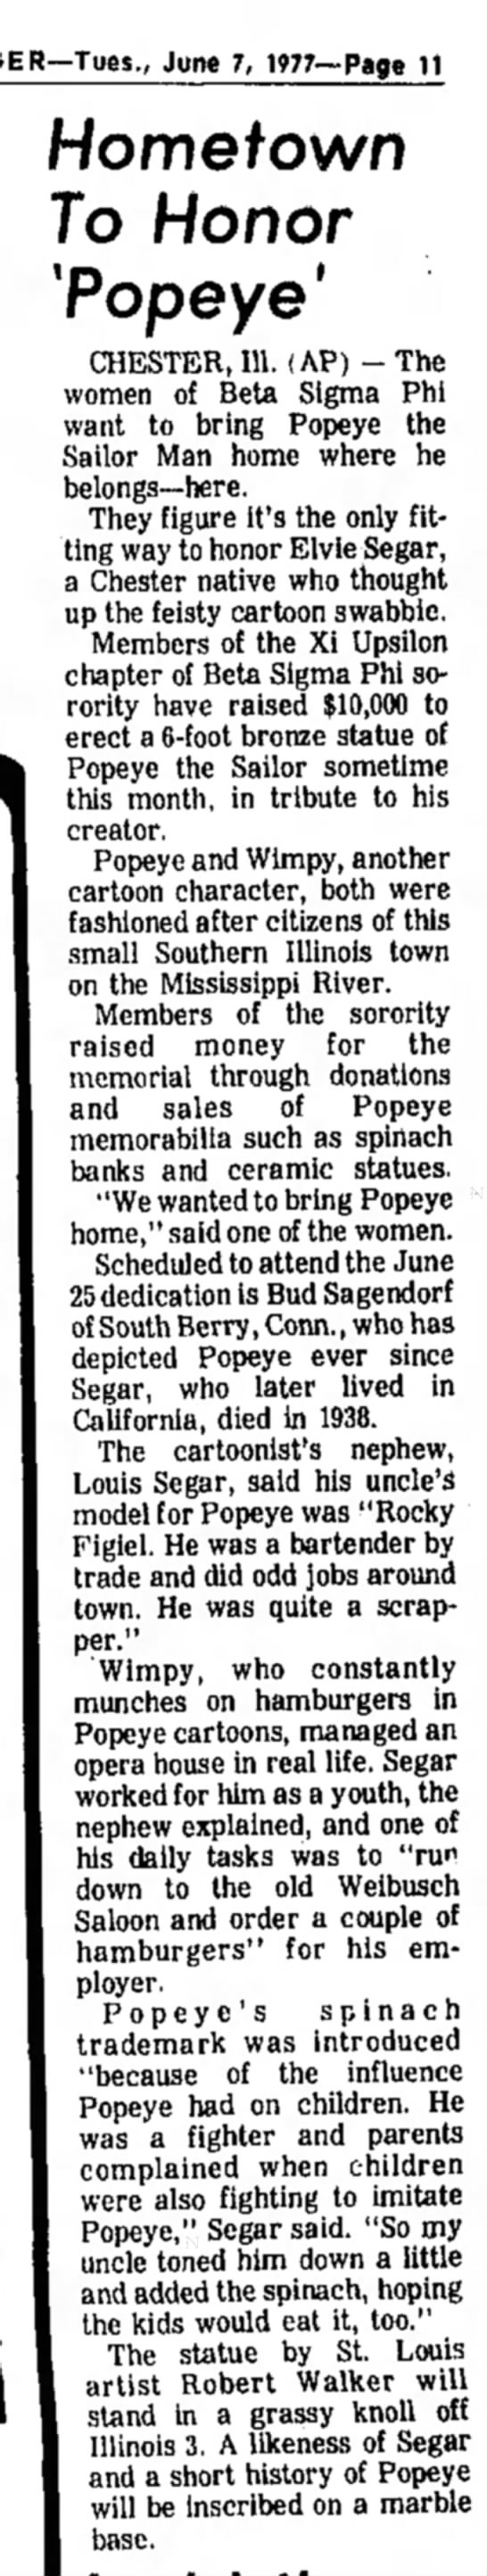 Popeye statue to be erected - June 7, 1977—Page 11 Hometown To Honor 'Popeye...